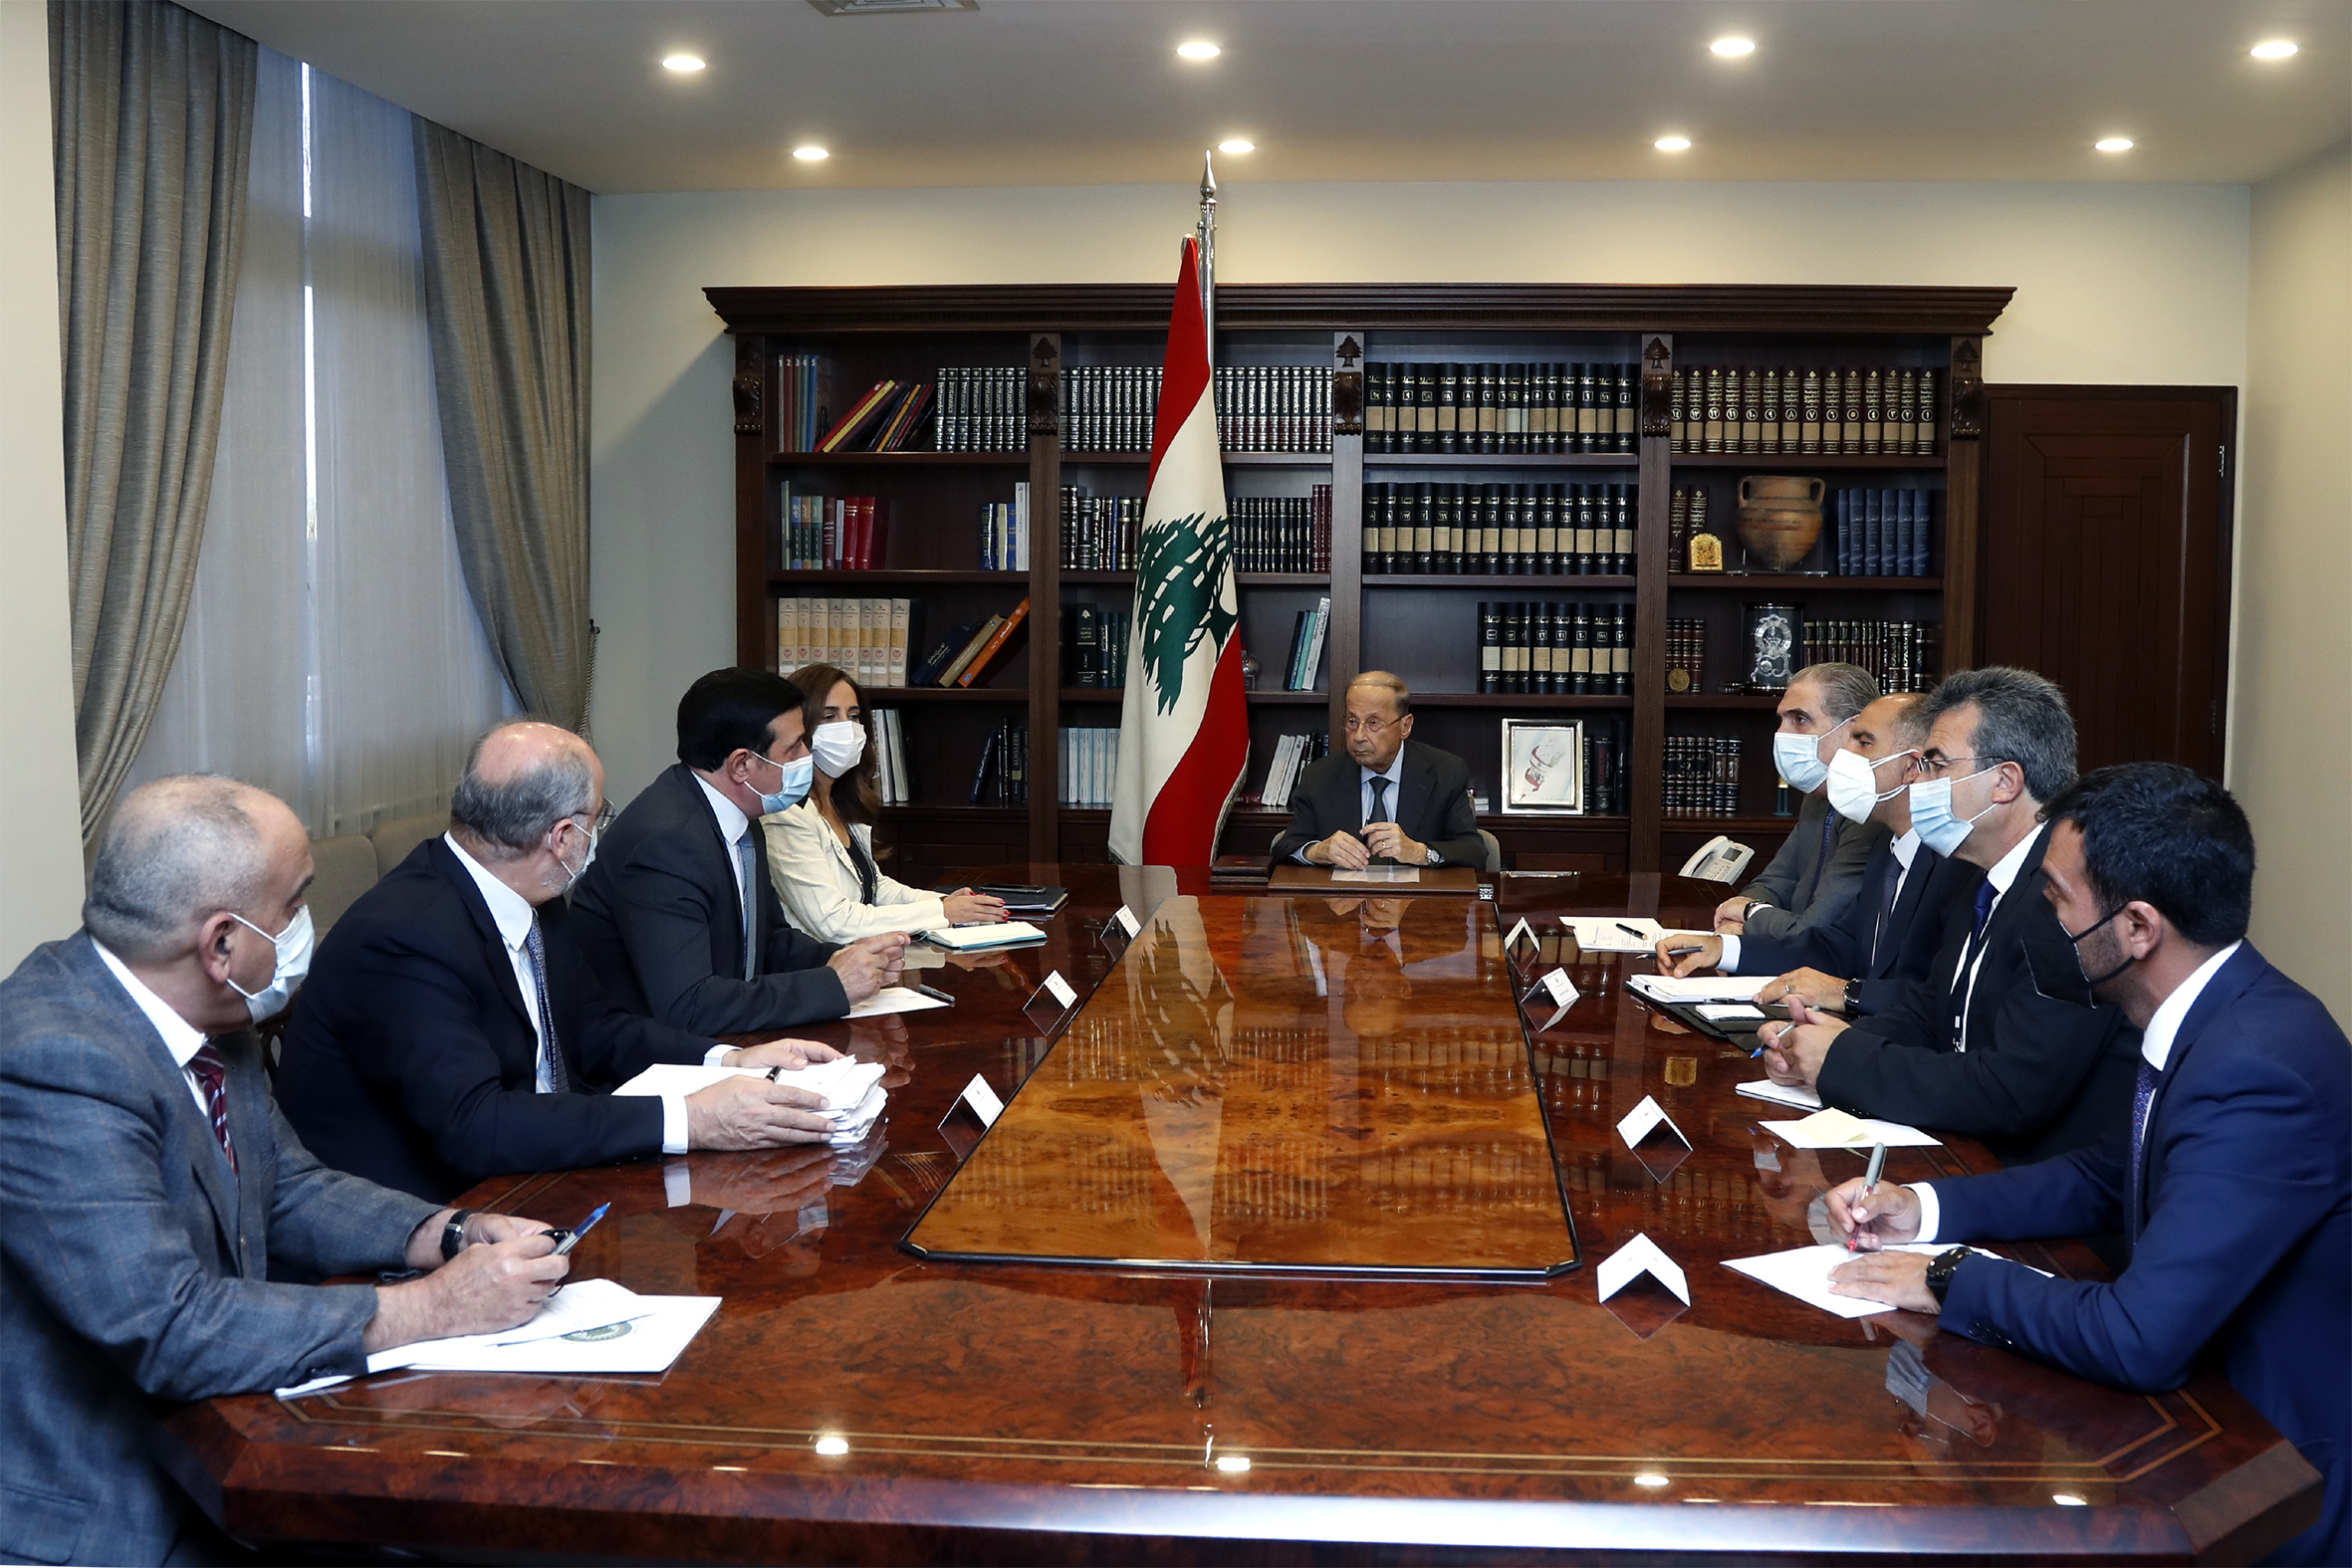 1 - Minister Zeina Akar and Minister Michel Najjar with a delegation